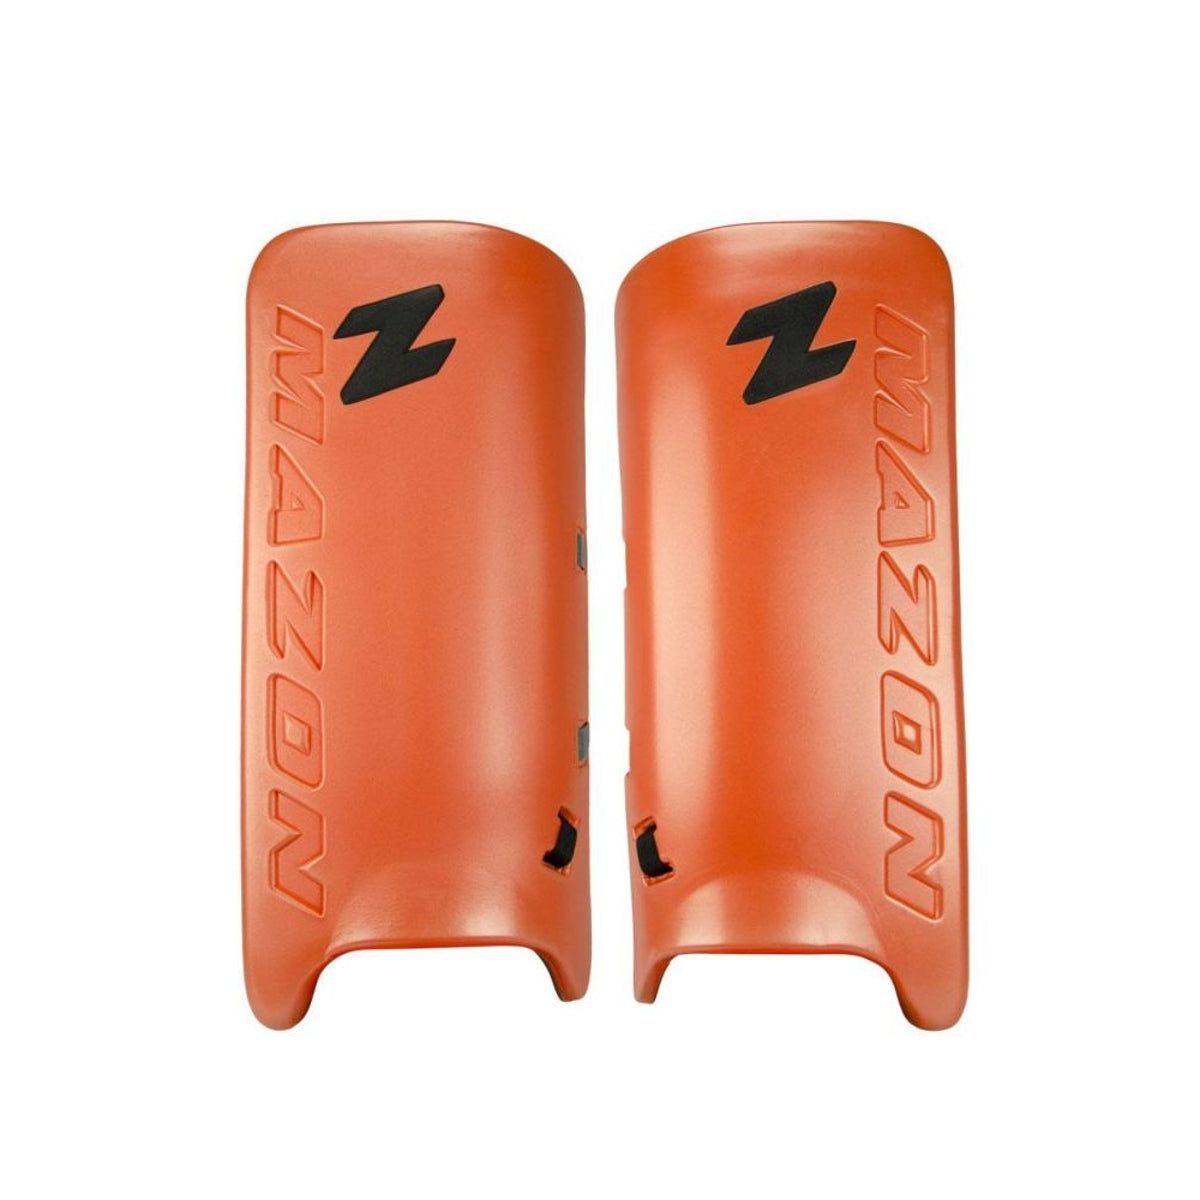 Z-Force Legguards